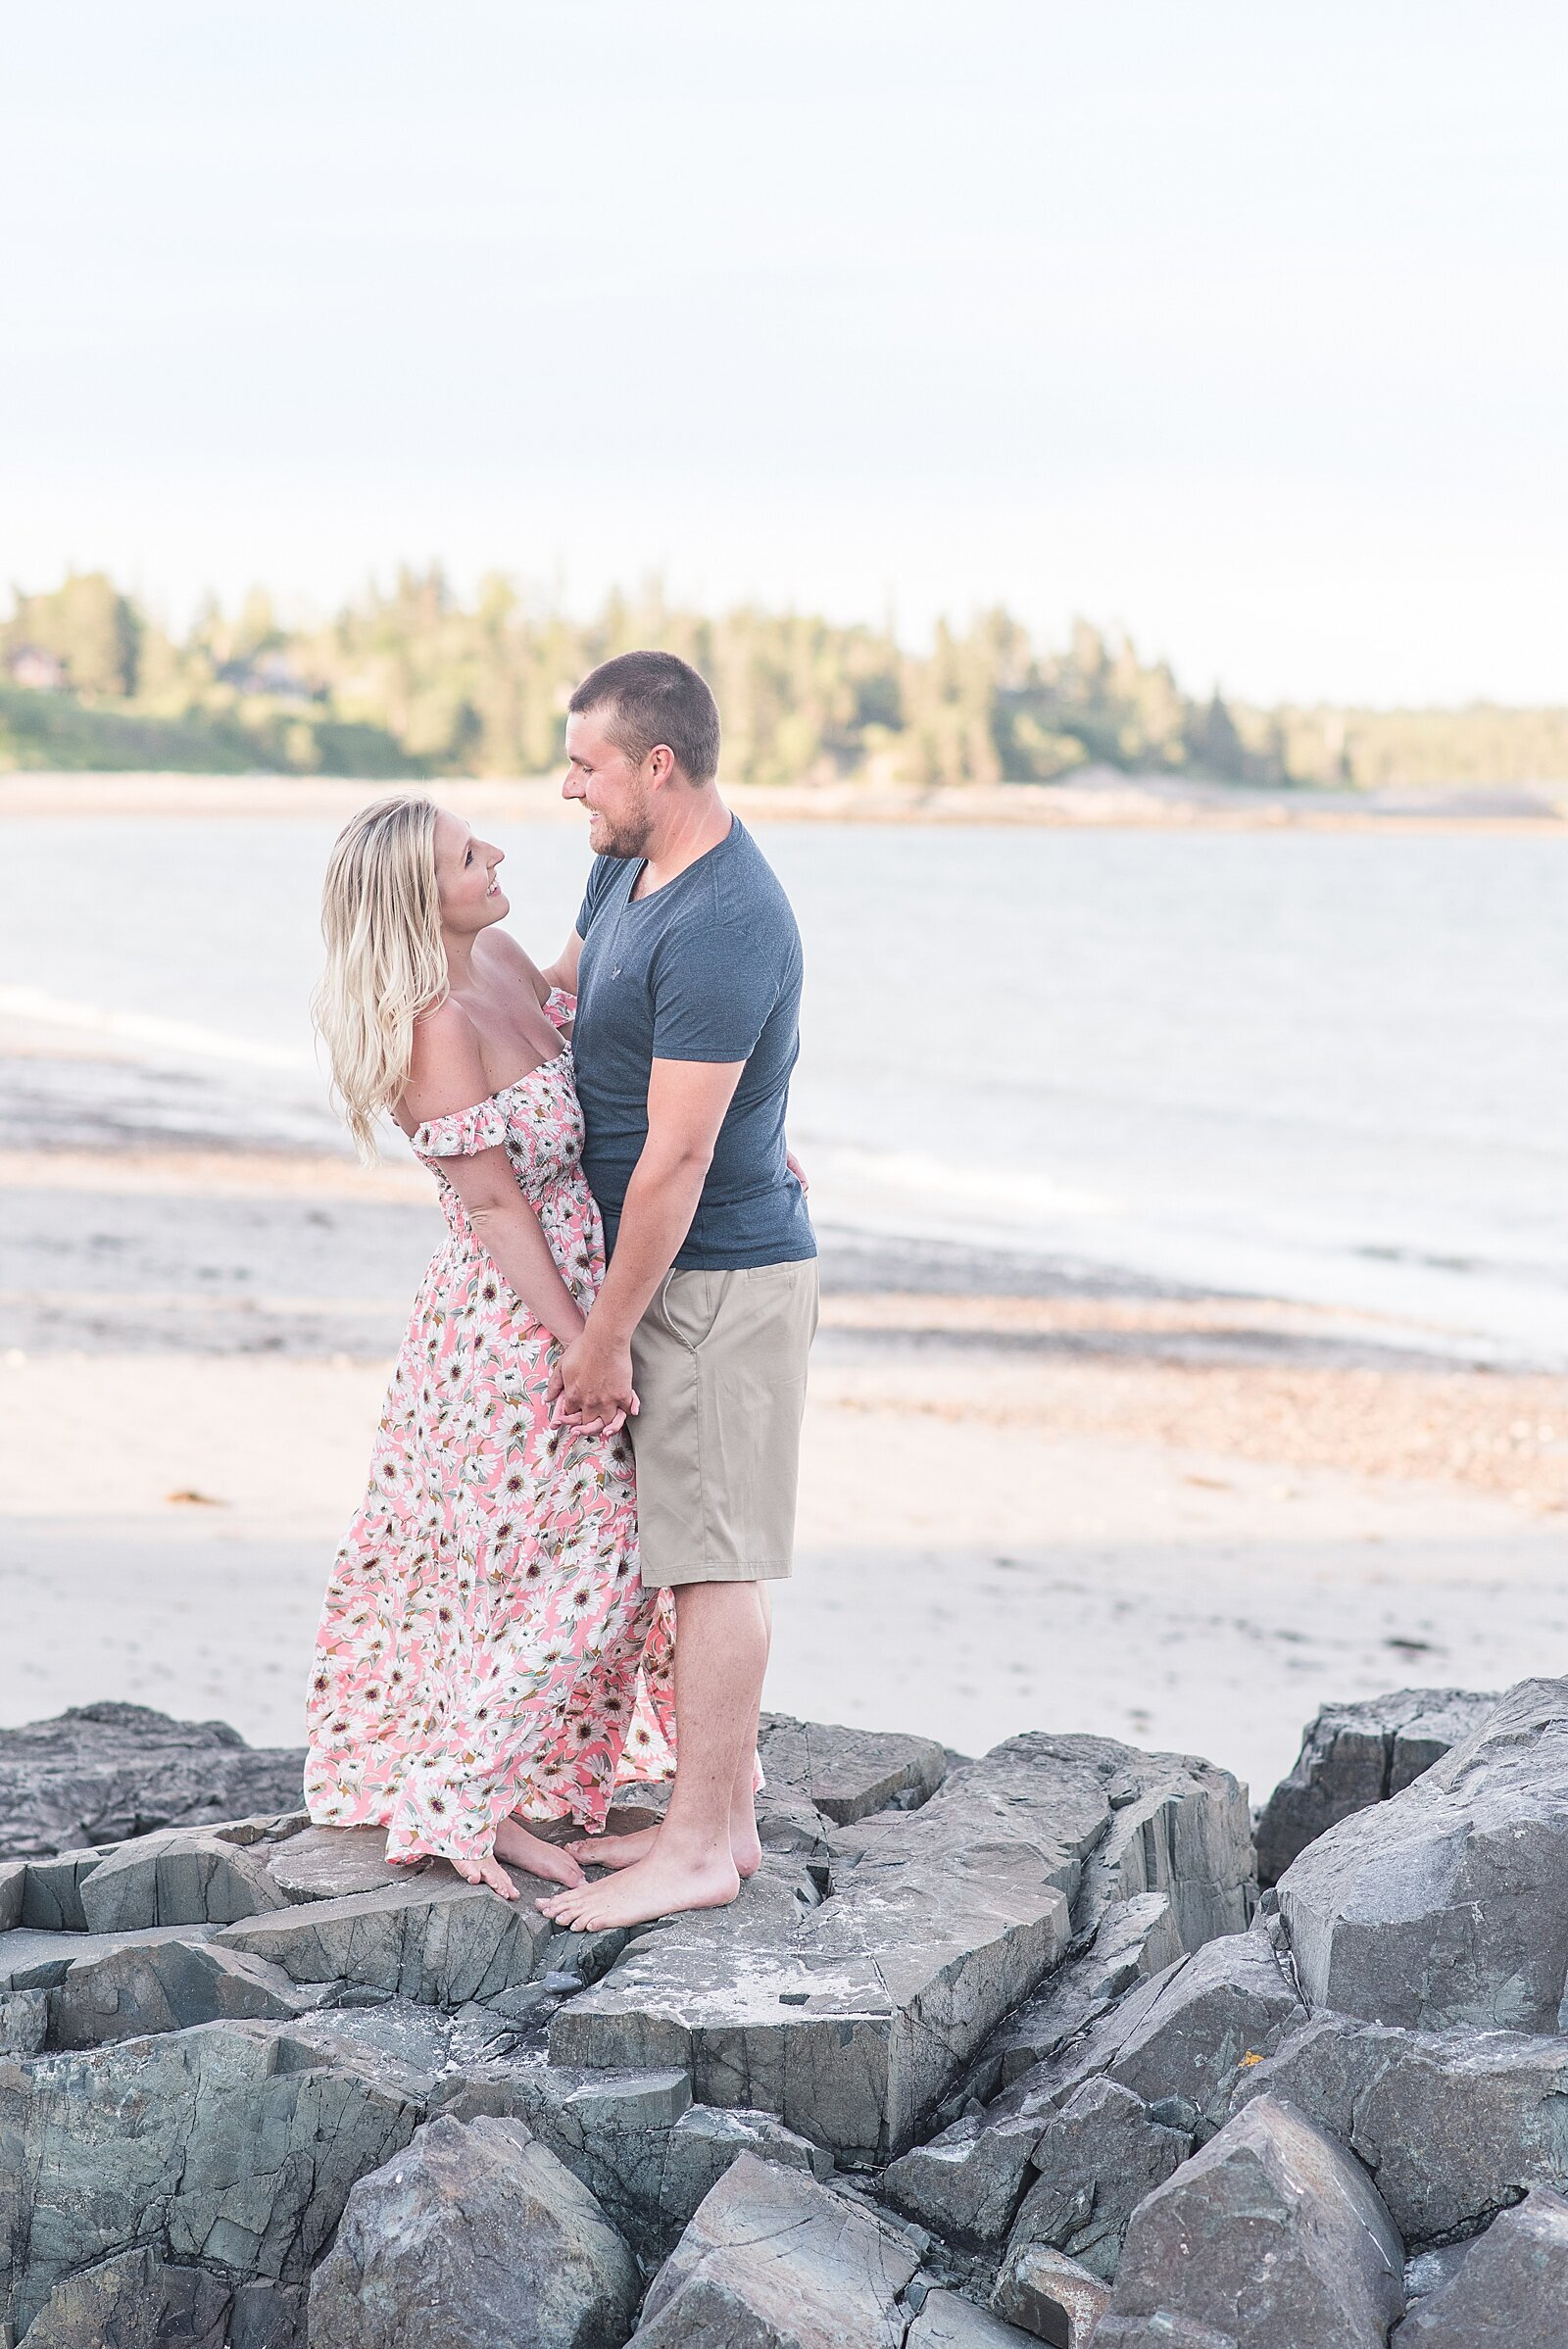 Maine Wedding Photographer | Stacey Pomerleau Photography_0020